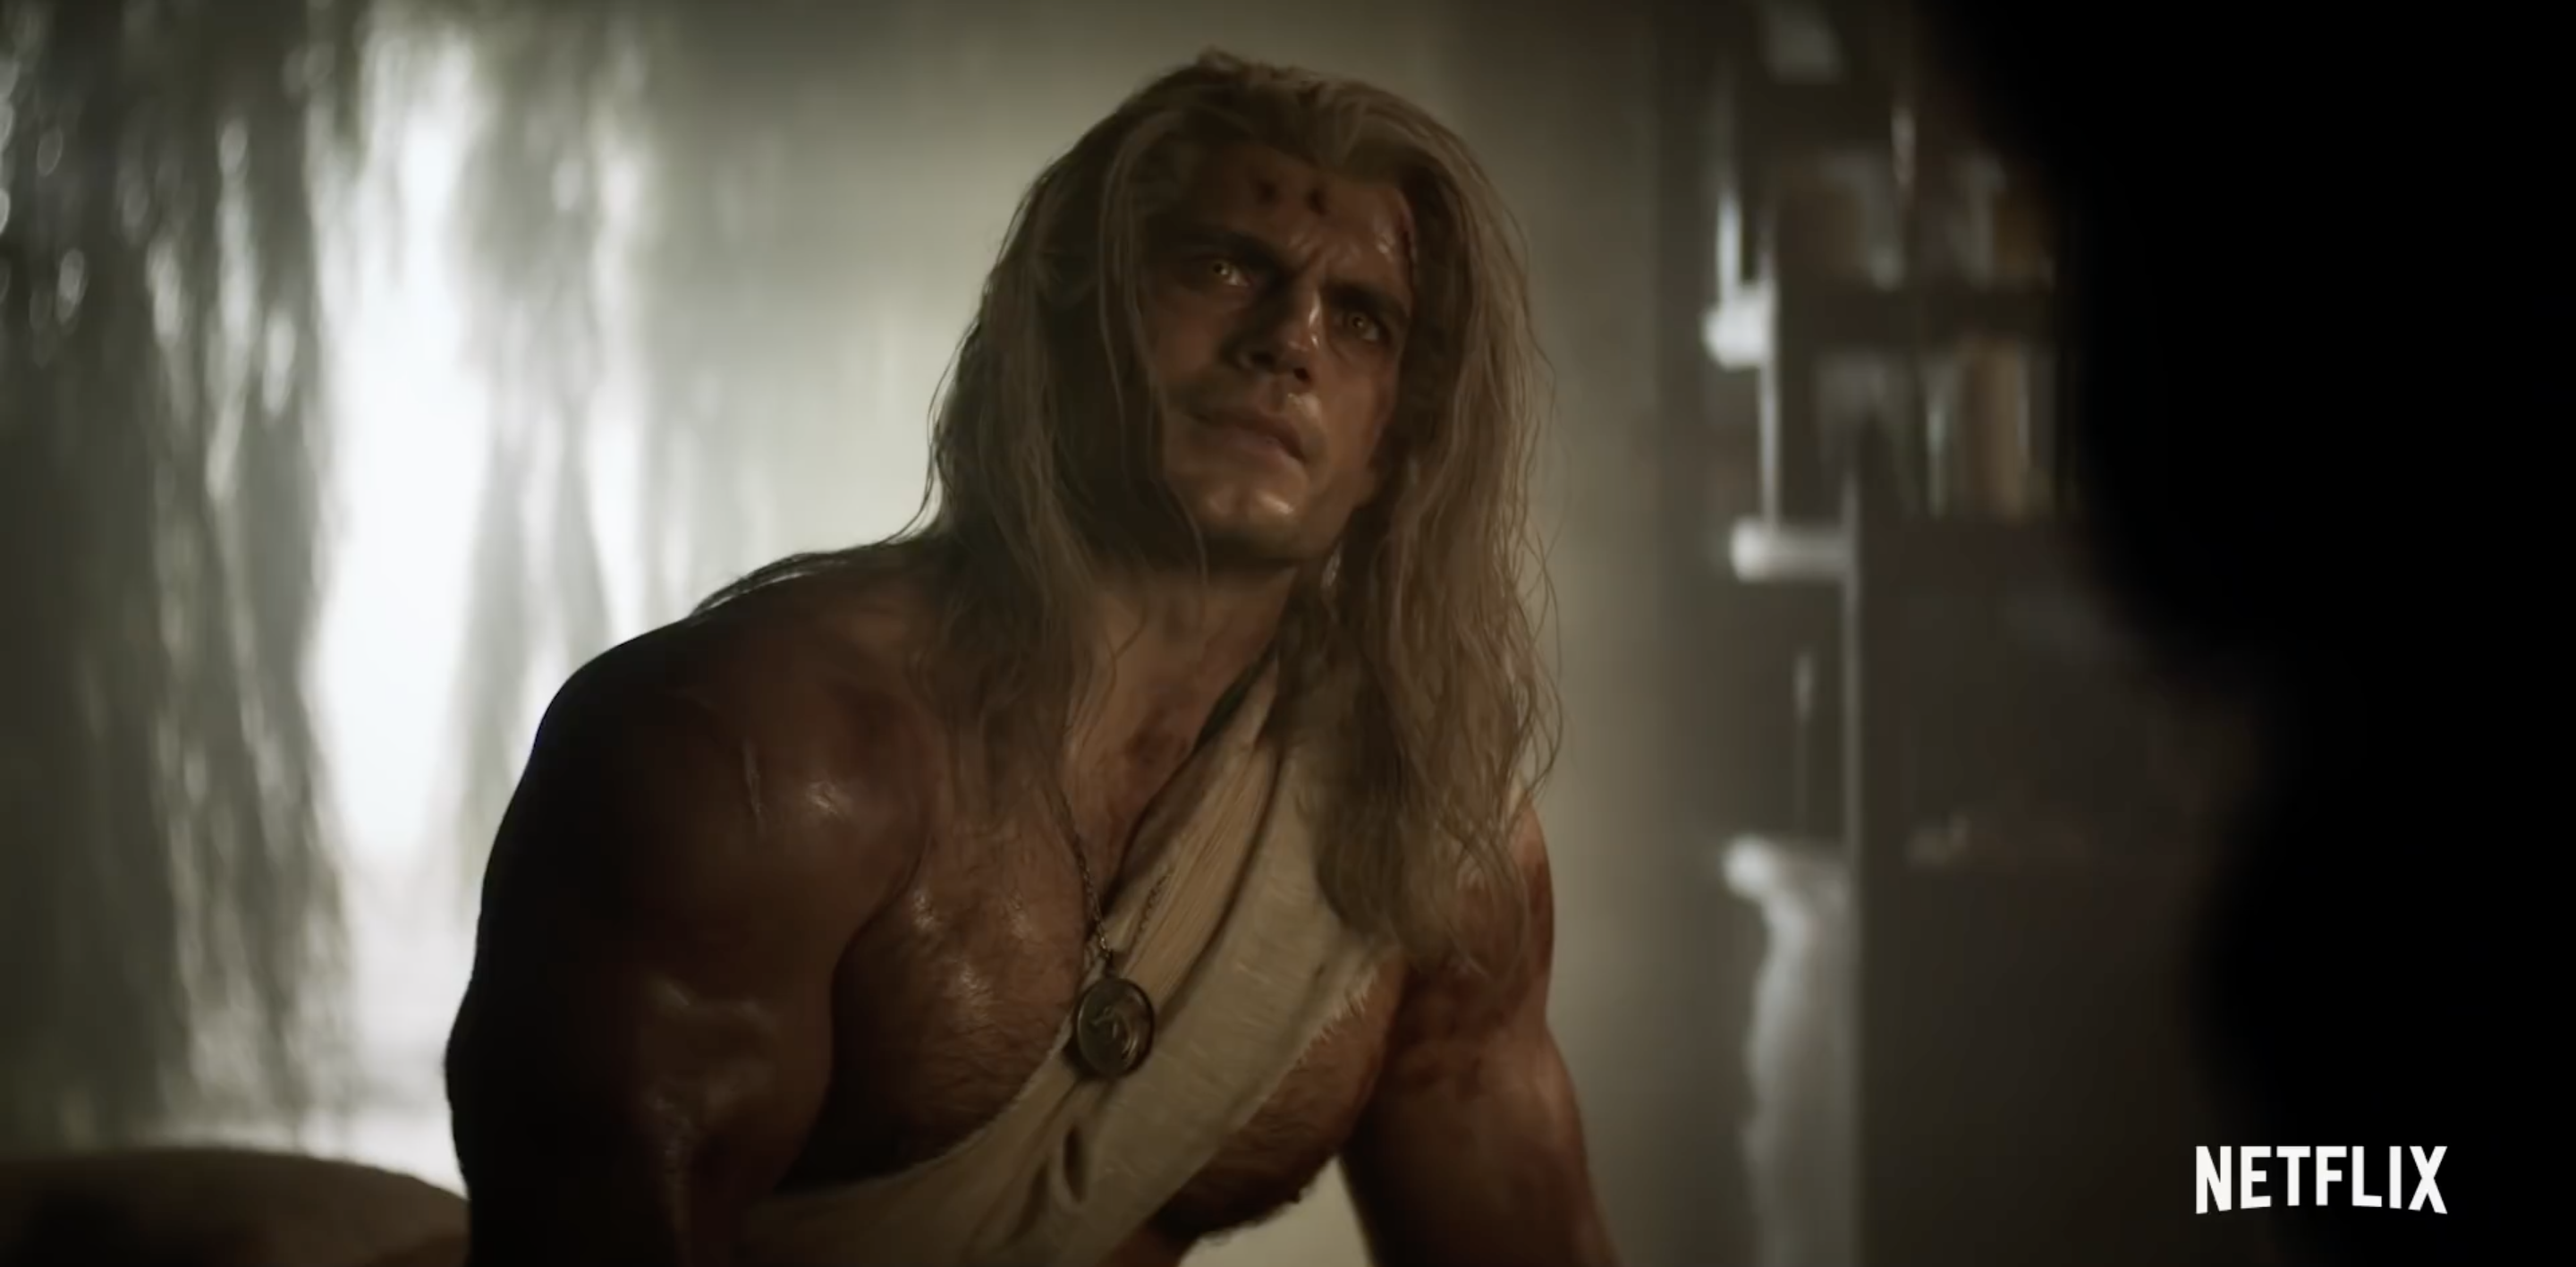 Henry Cavill as Geralt in The Witcher, he is shirtless and RIPPED baby